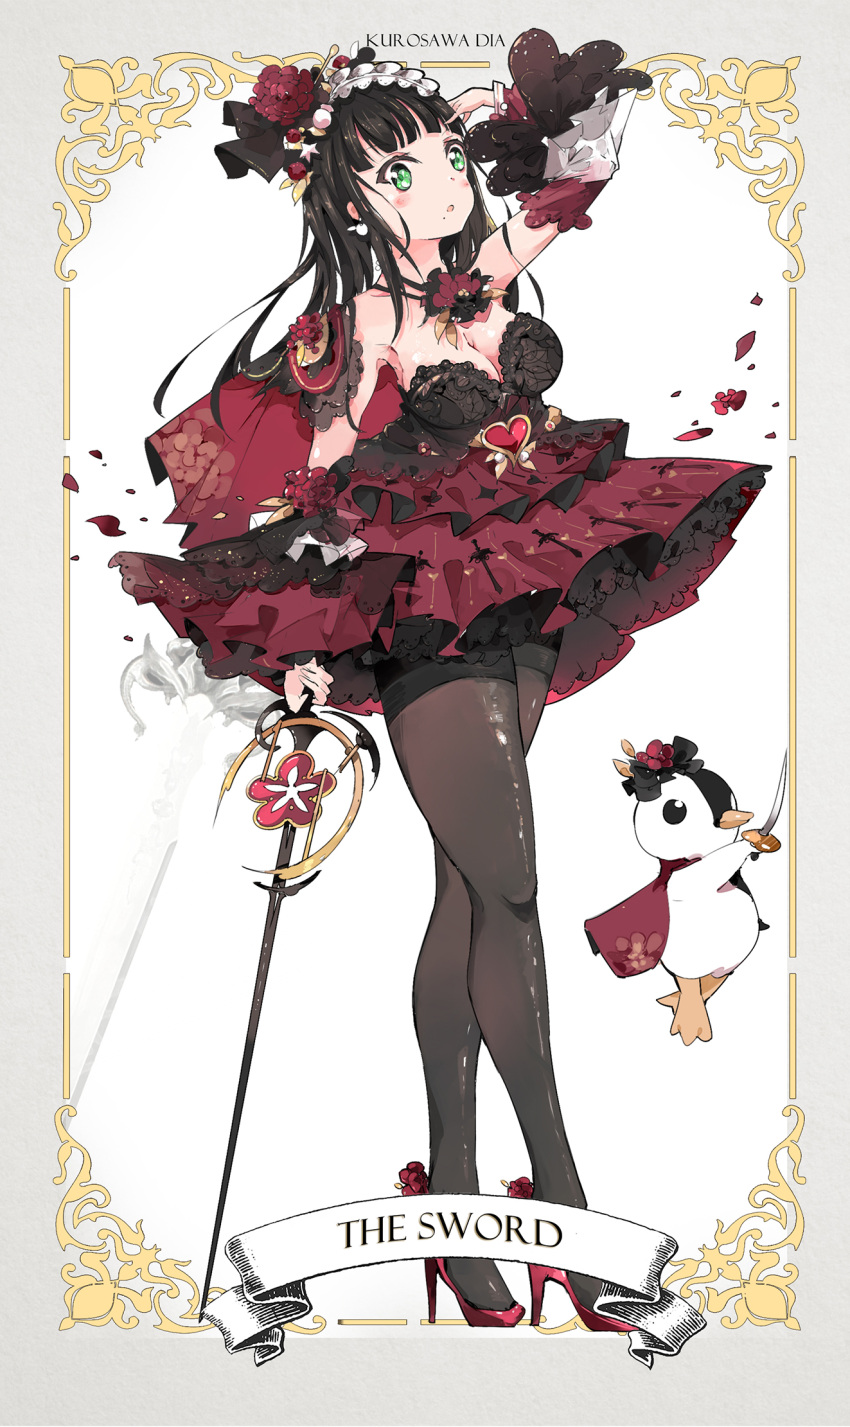 1girl :o arm_up bangs bird black_hair black_legwear blush breasts cape character_name cleavage detached_sleeves dress earrings english flower full_body green_eyes grey_border hair_flower hair_ornament hairband hand_on_own_head heart high_heels highres jewelry kurosawa_dia large_breasts lolita_hairband long_hair love_live! love_live!_sunshine!! mole mole_under_mouth pantyhose penguin petals print_dress qianqian red_dress red_footwear solo strapless strapless_dress sword thighband_pantyhose two-tone_dress weapon